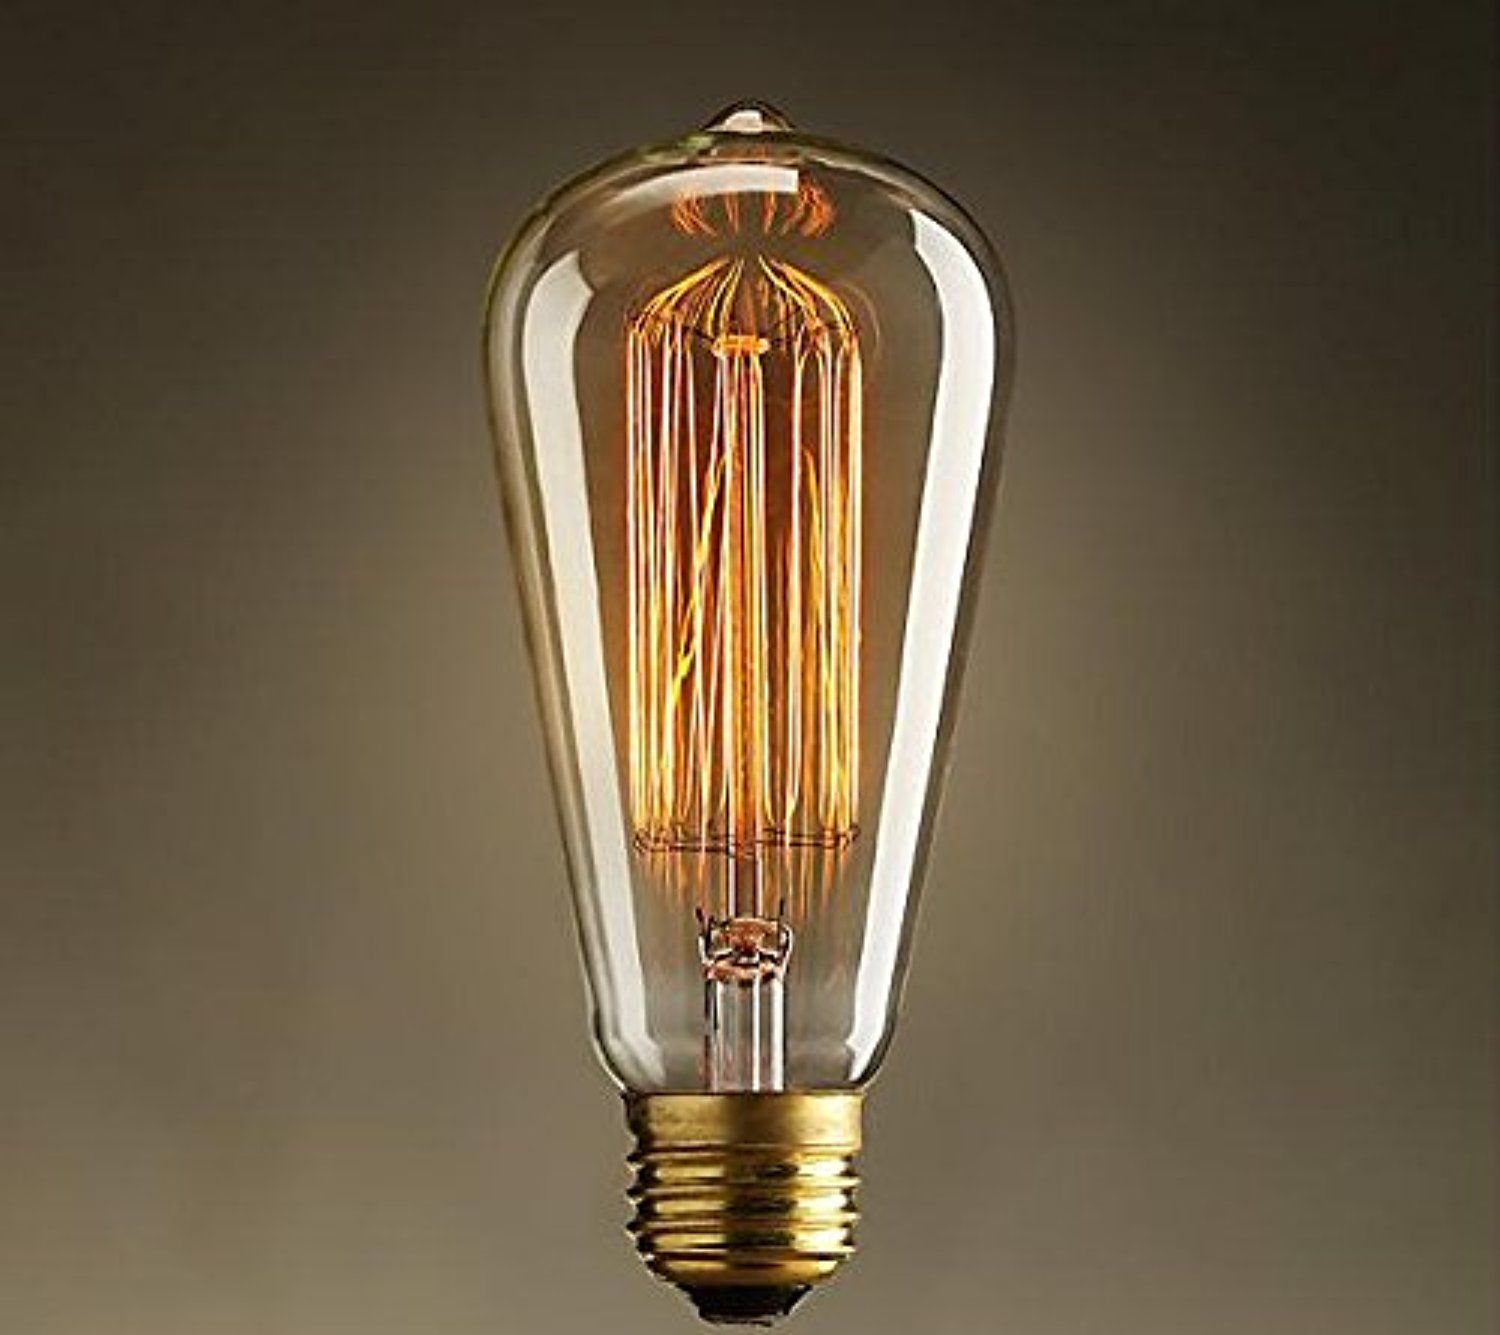 fresh bulbs recommended nautical with photography projector source full street of light counter home bulb lamps cool oil best pendants size ceiling decor reptiles for rajasweetshouston double heat kitchen great seeded agreeable glass pendant beach interior bedside reflector lamp table lights blown chair lighting